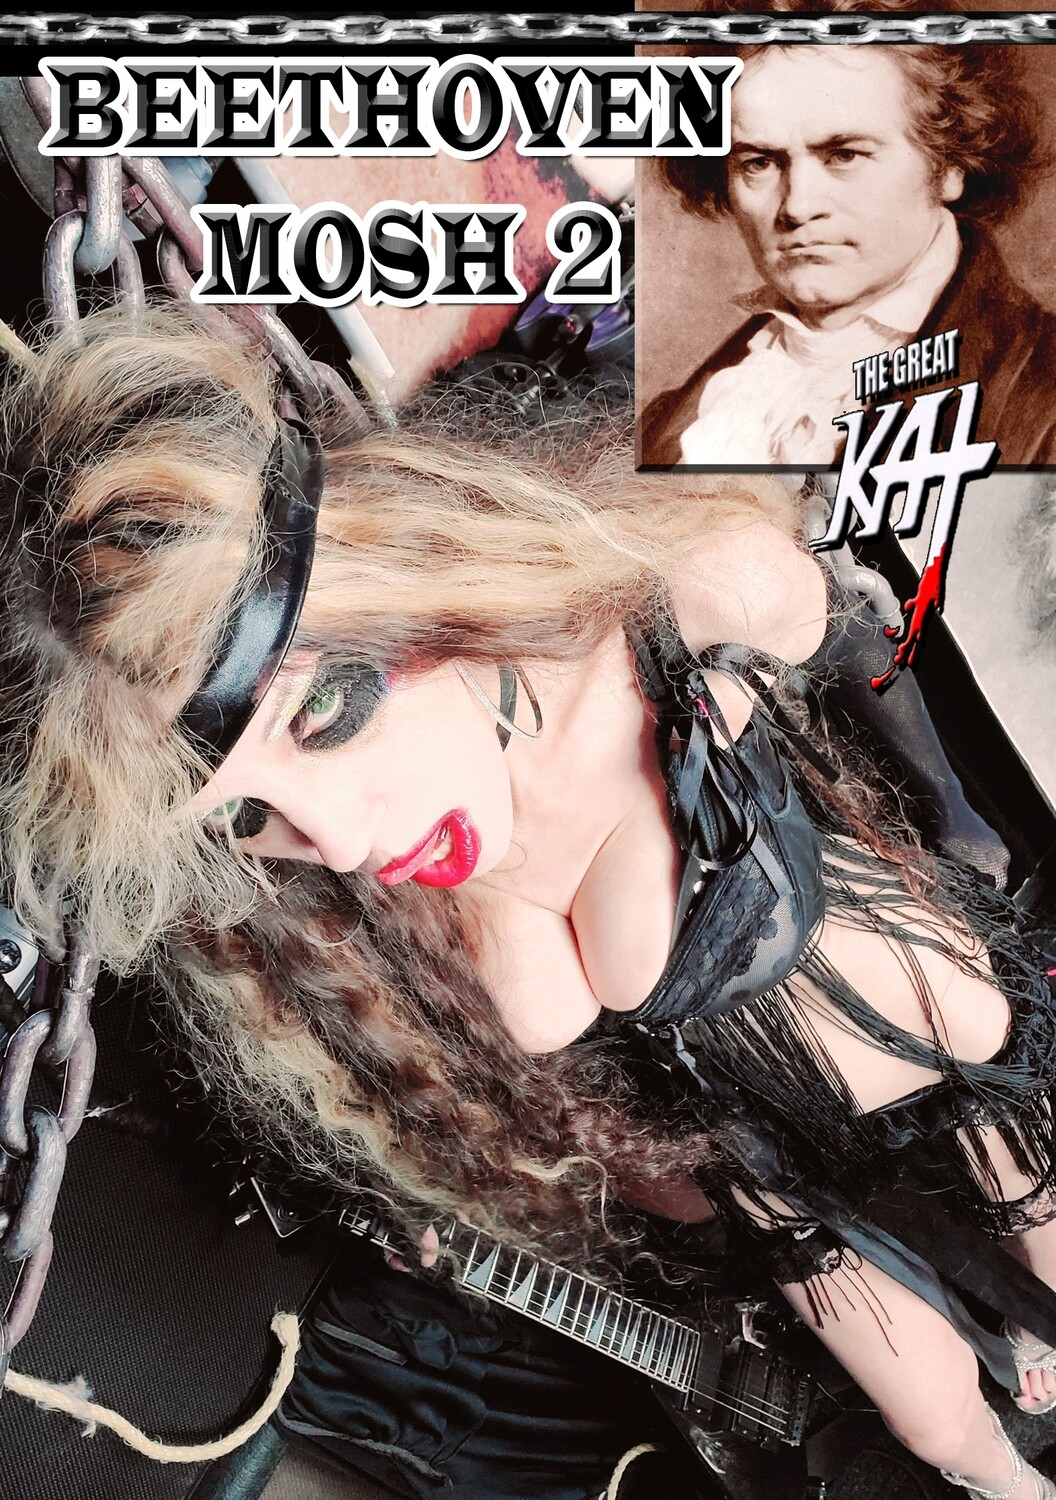 """NEW """"BEETHOVEN MOSH 2"""" MUSIC VIDEO DVD SINGLE (1:45)! PERSONALIZED AUTOGRAPHED by THE GREAT KAT (Signed to Customer's Name)! HAPPY 250th BIRTHDAY BEETHOVEN!"""